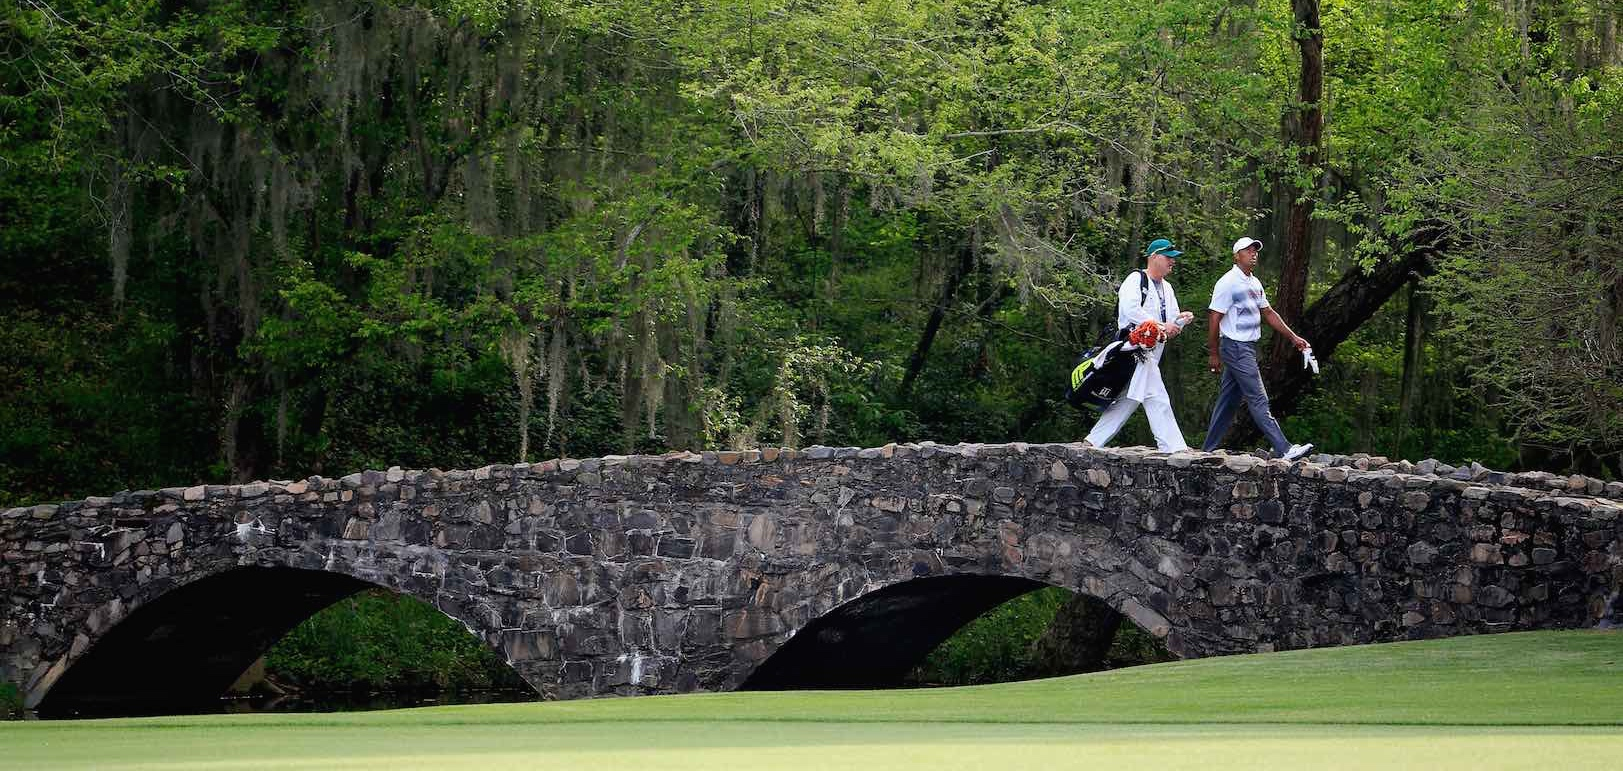 How much does it cost for a Masters ticket?